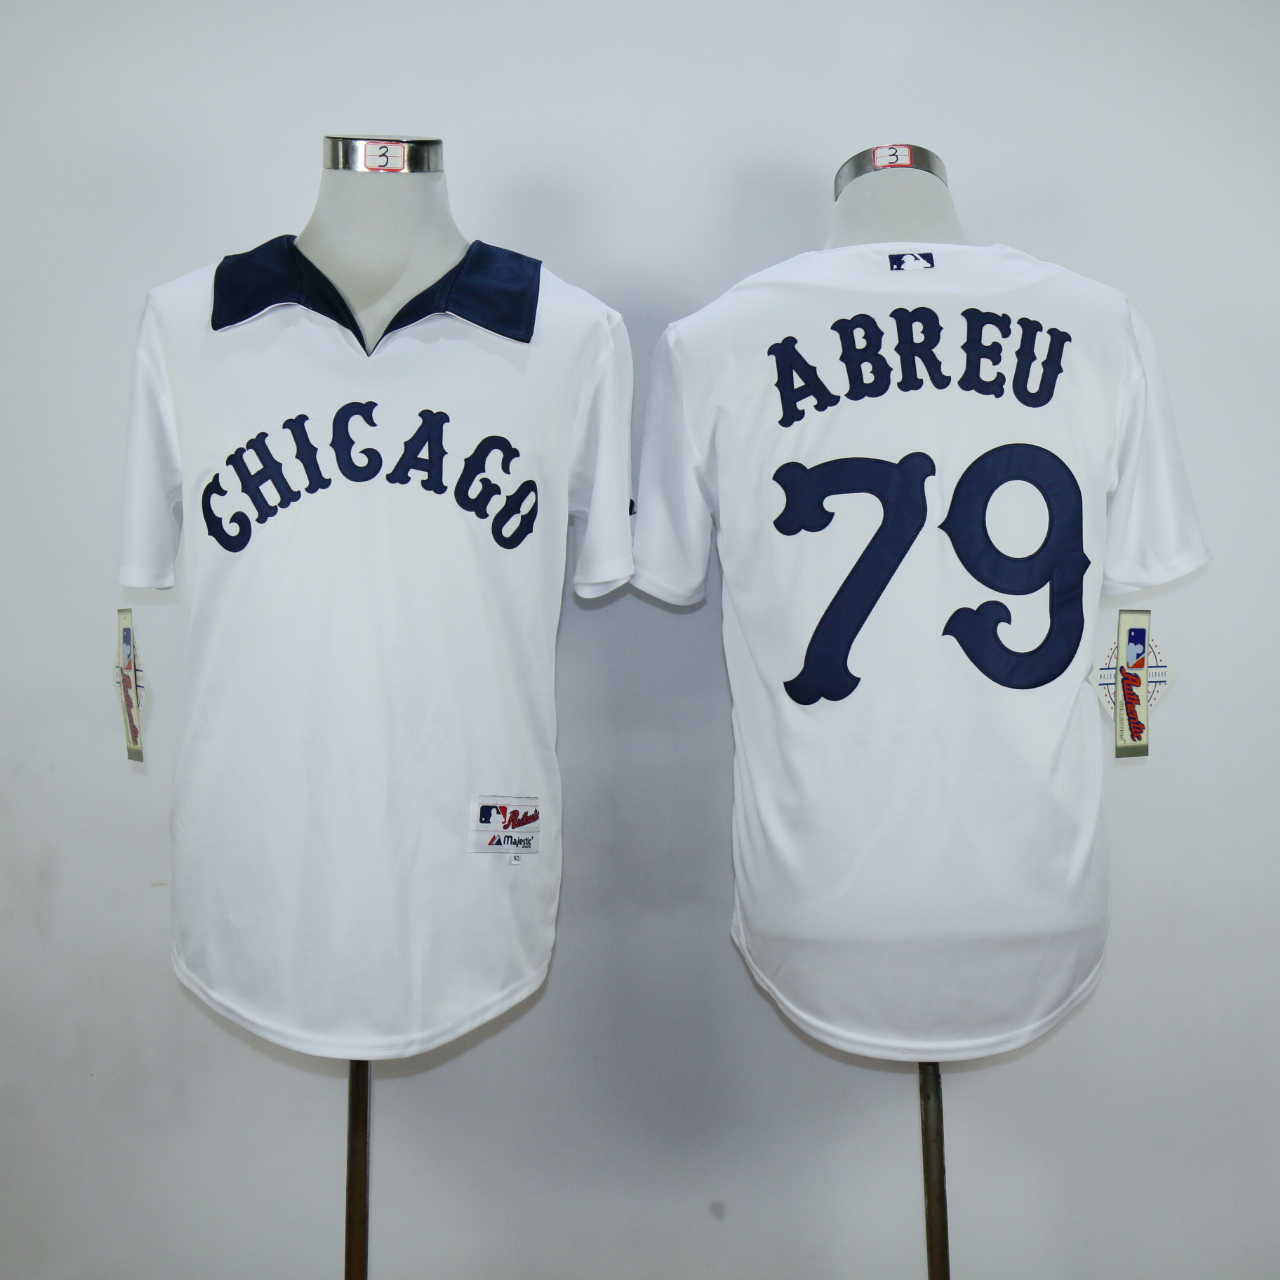 MLB Chicago White Sox 79 Abreu White Jersey